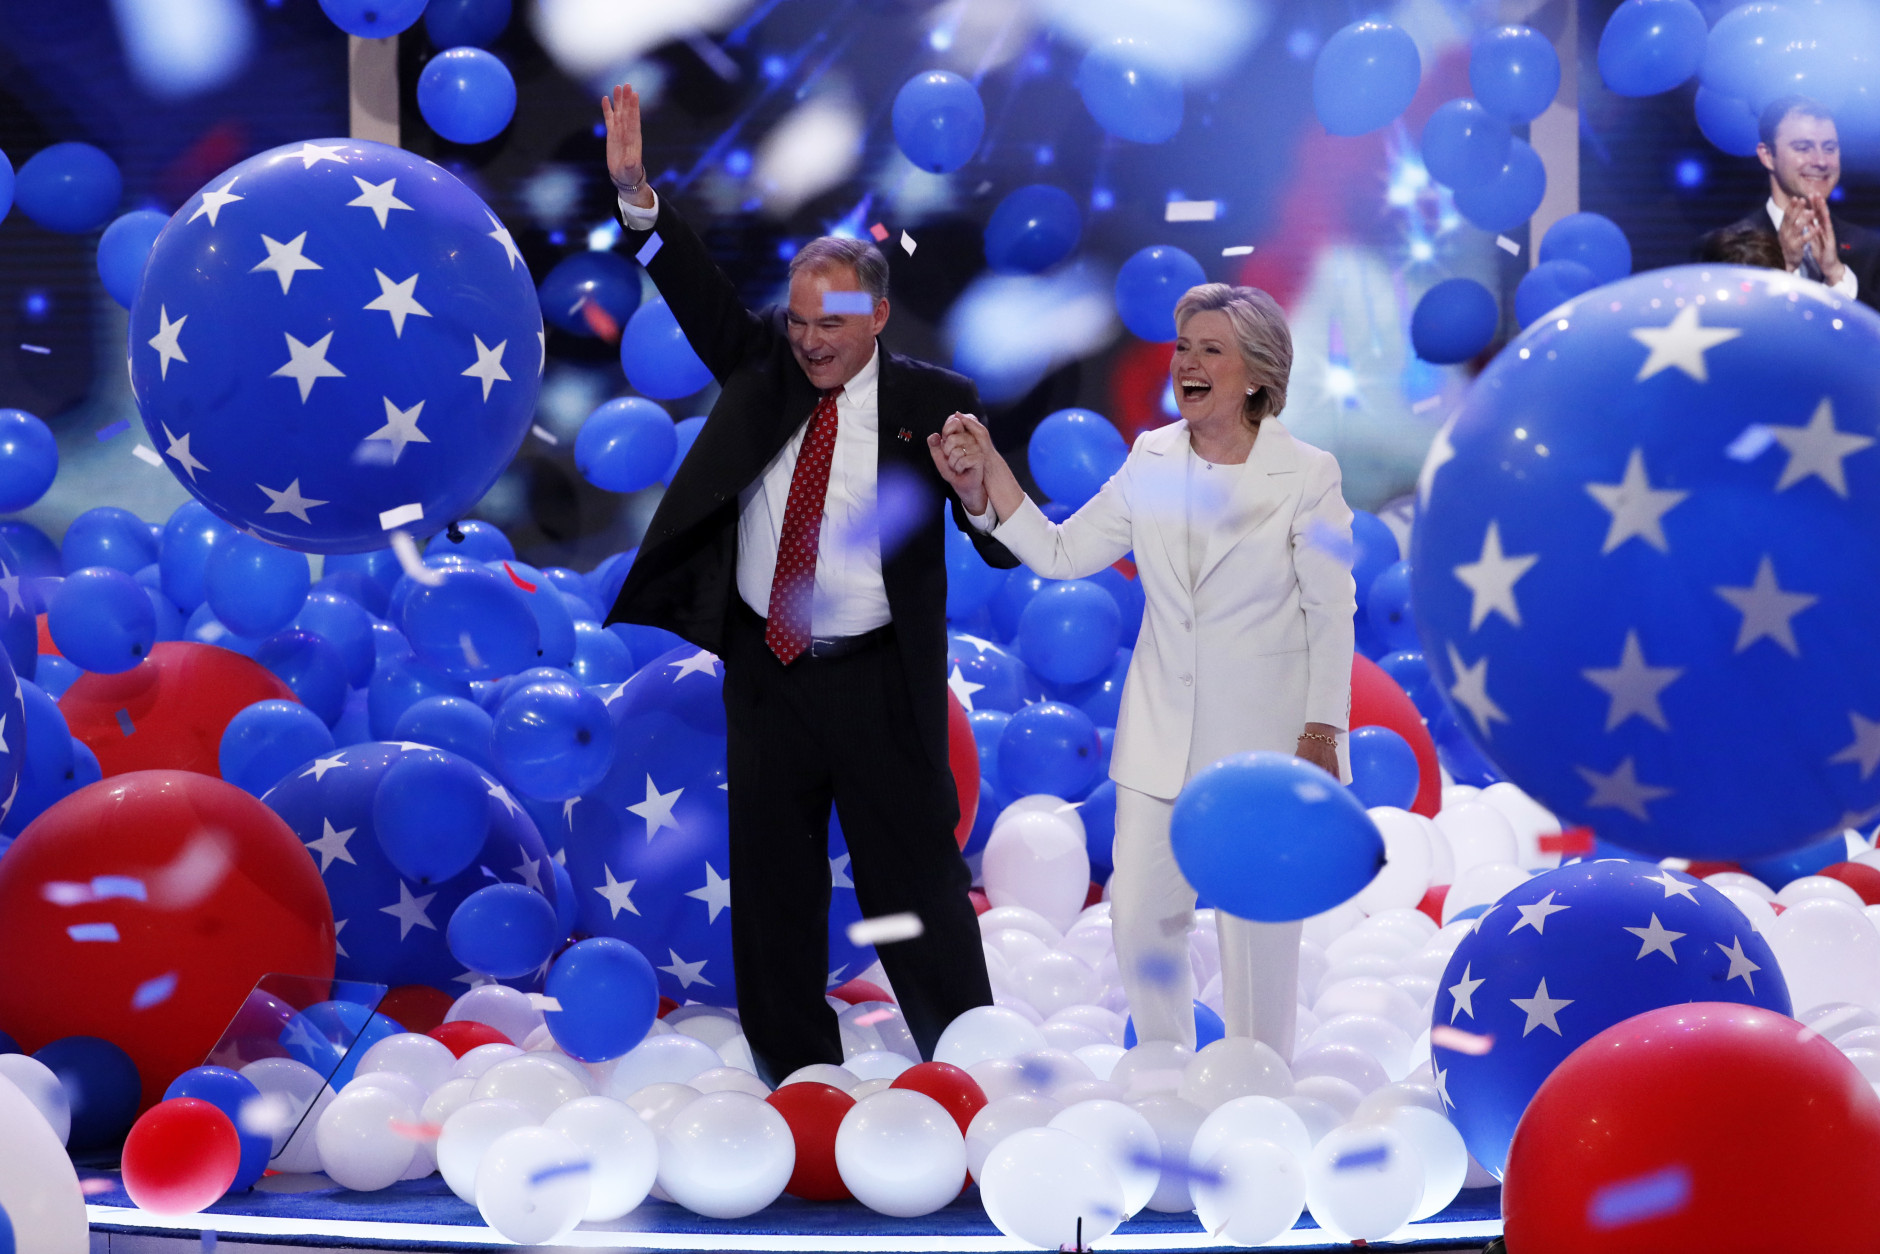 Democratic vice presidential nominee Sen. Tim Kaine, D-Va., and Democratic presidential nominee Hillary Clinton walk through the falling balloons during the final day of the Democratic National Convention in Philadelphia , Thursday, July 28, 2016. (AP Photo/J. Scott Applewhite)